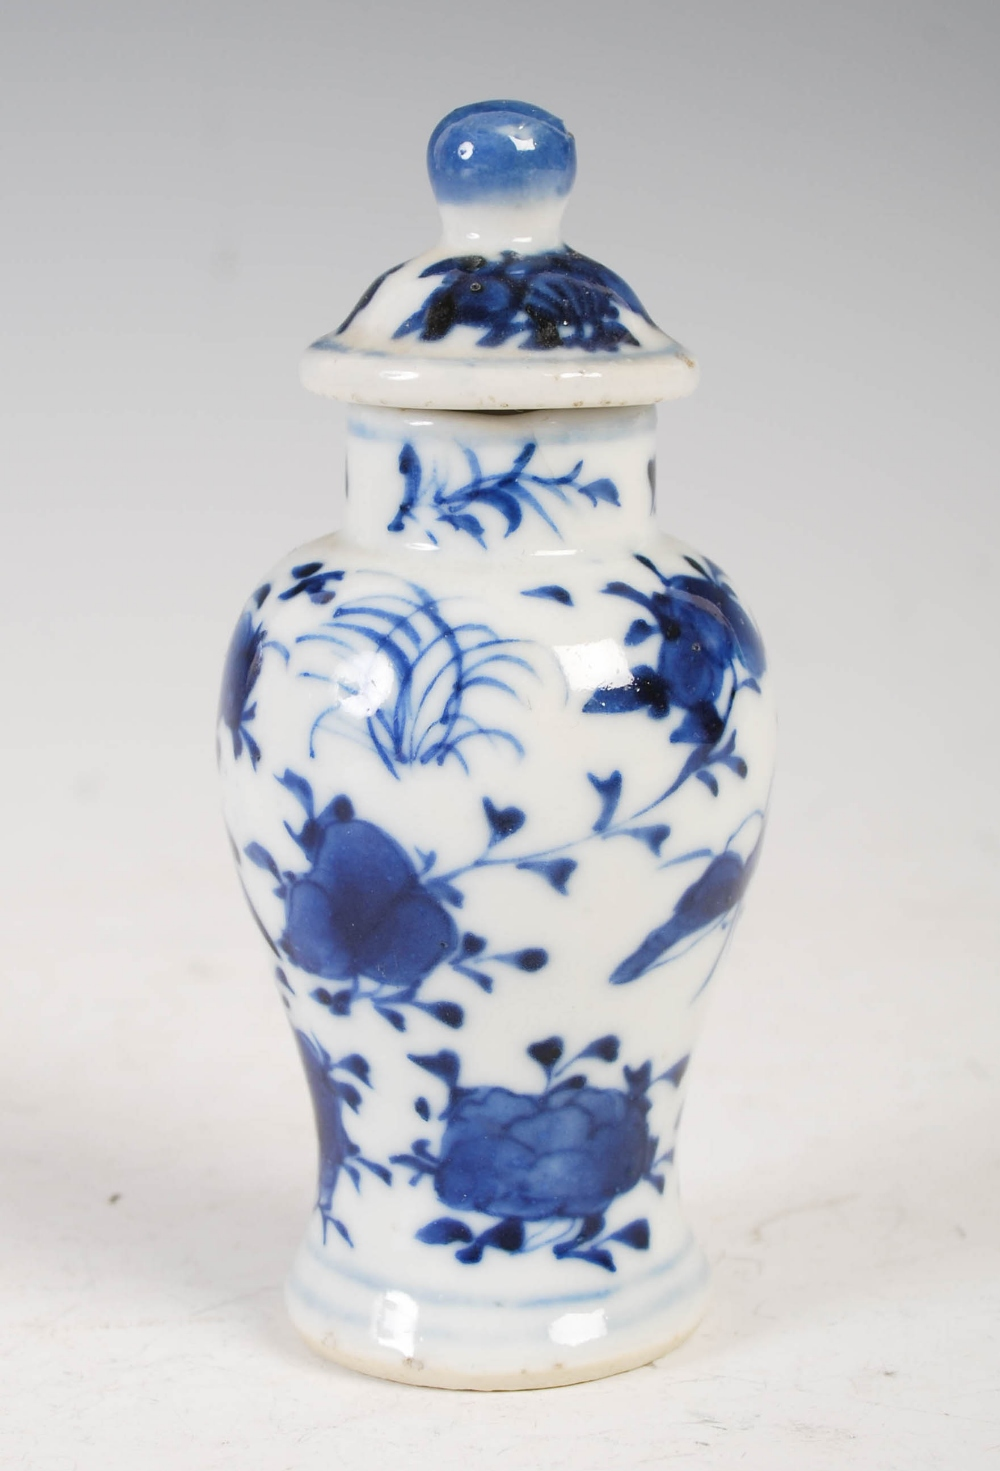 A miniature Chinese blue and white porcelain jar and cover, late Qing Dynasty, decorated with - Image 2 of 4